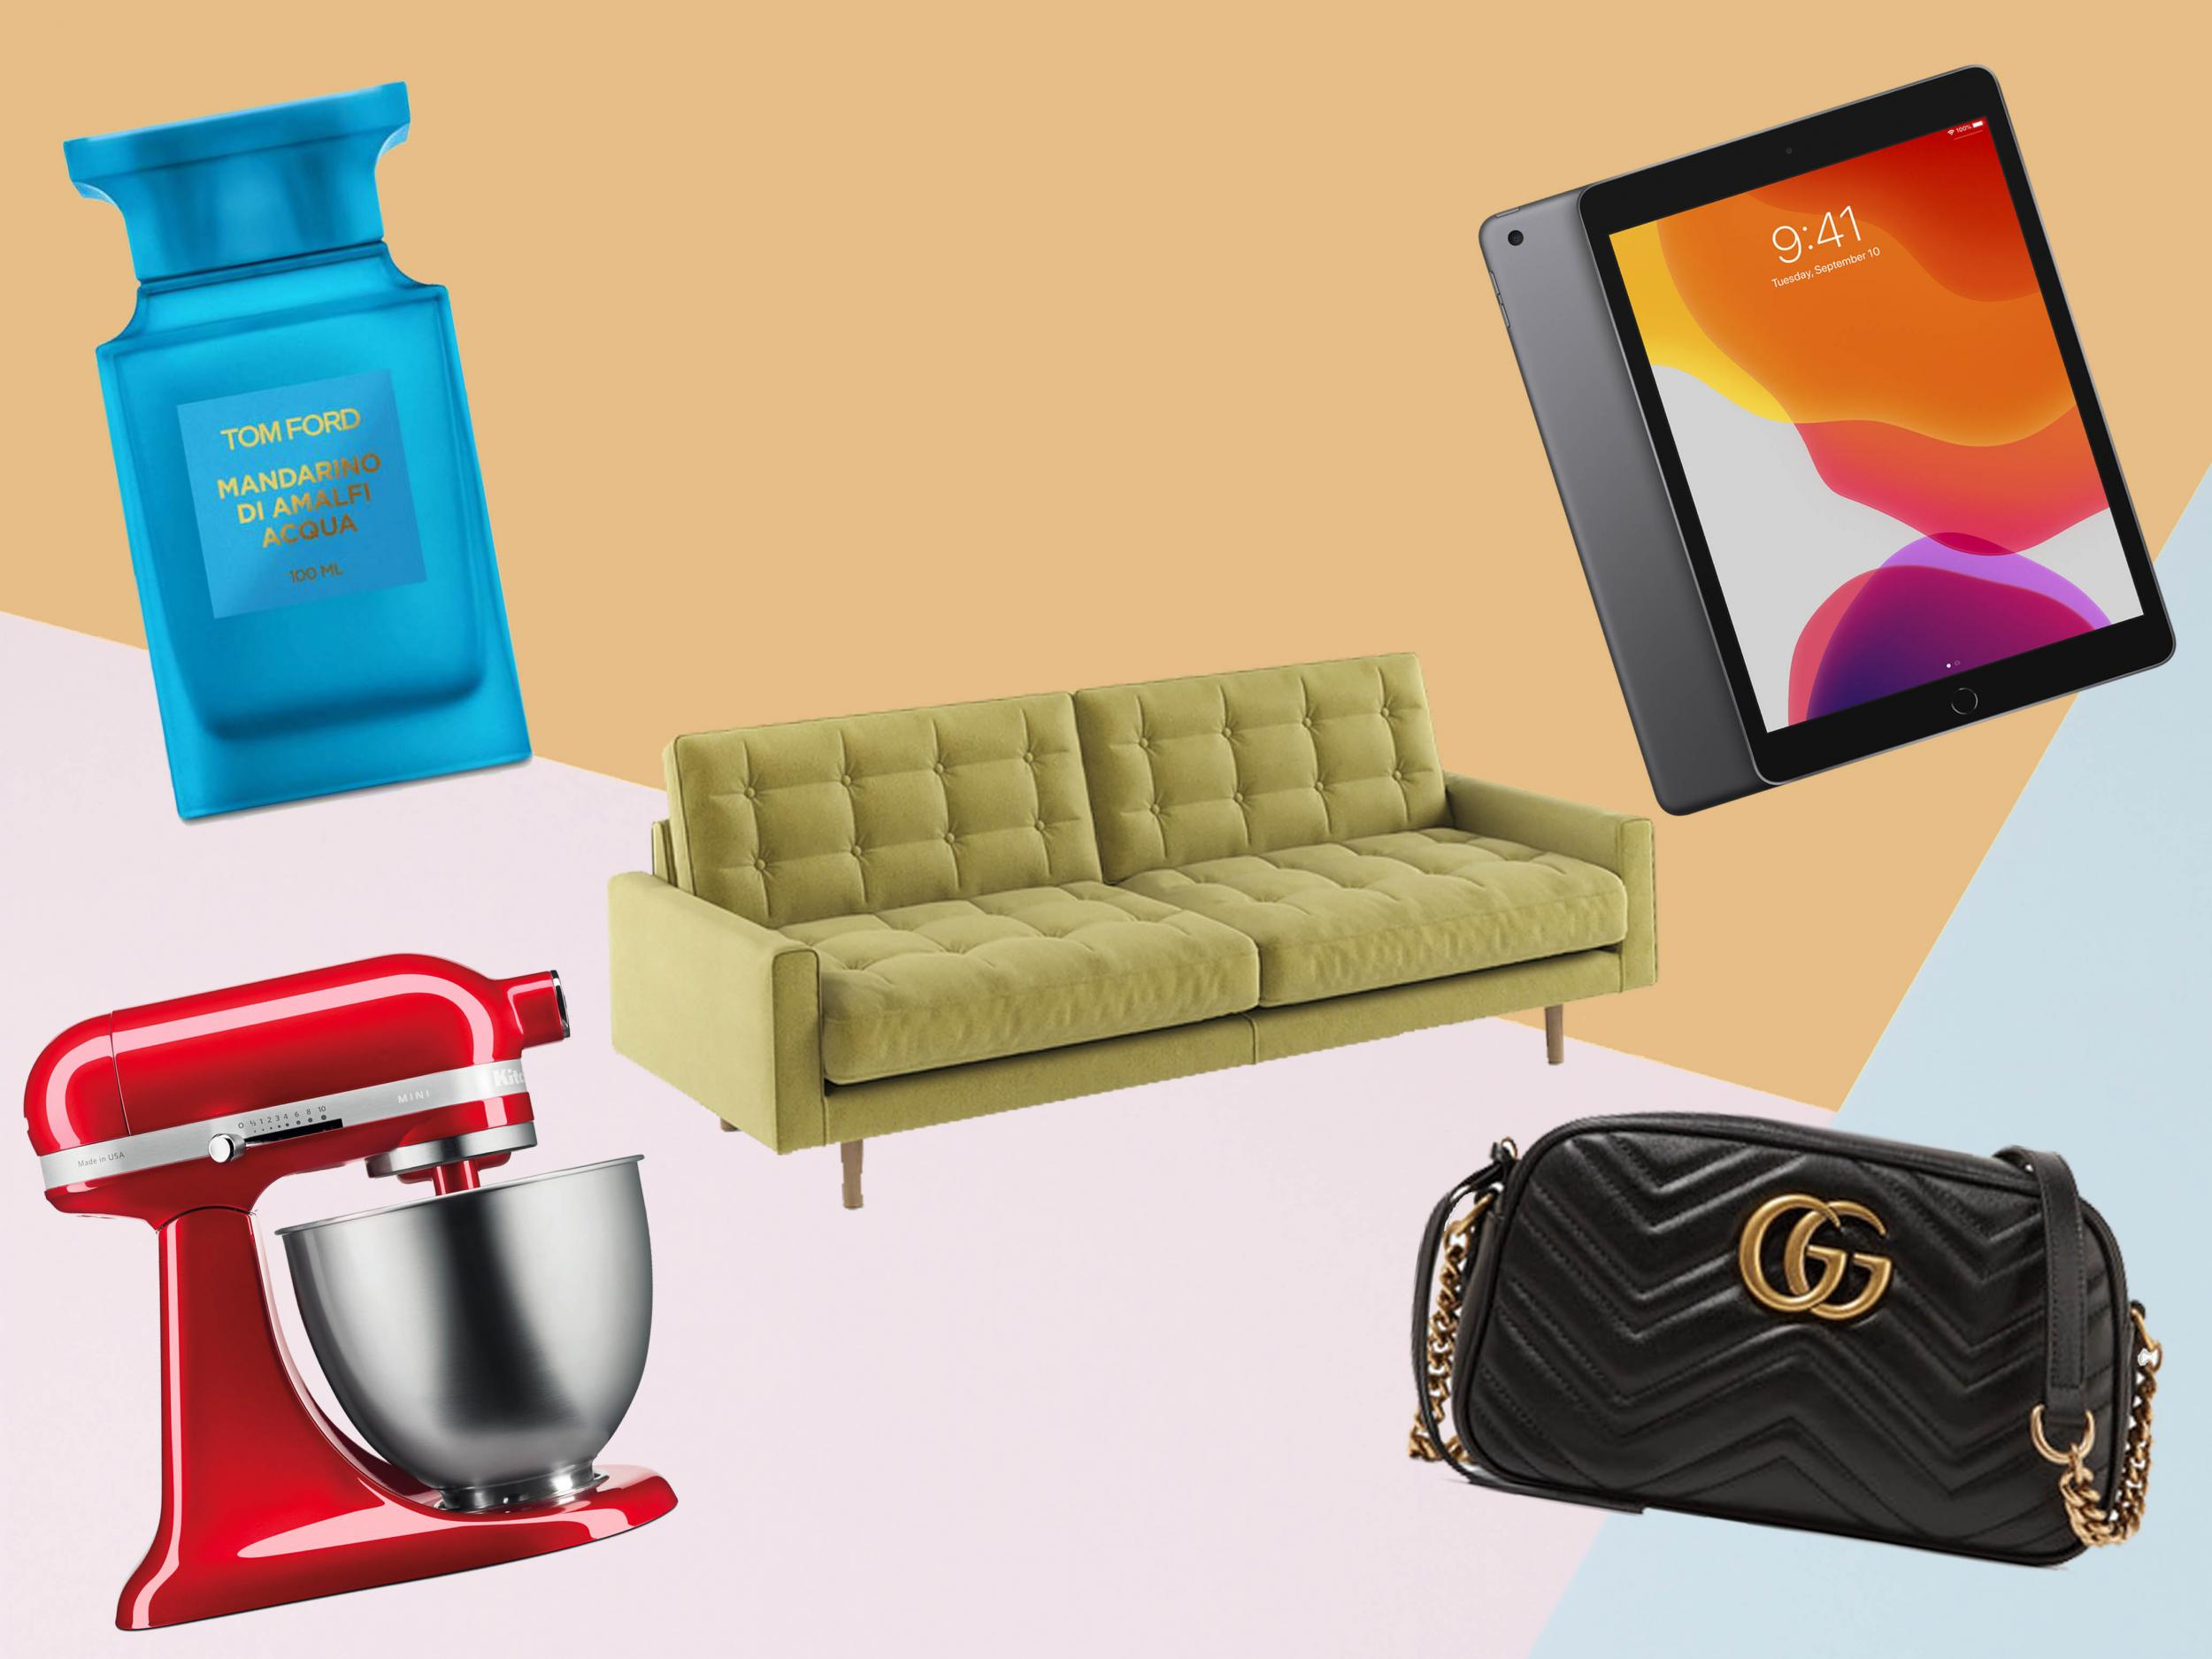 Best UK deals from Amazon, Currys and more